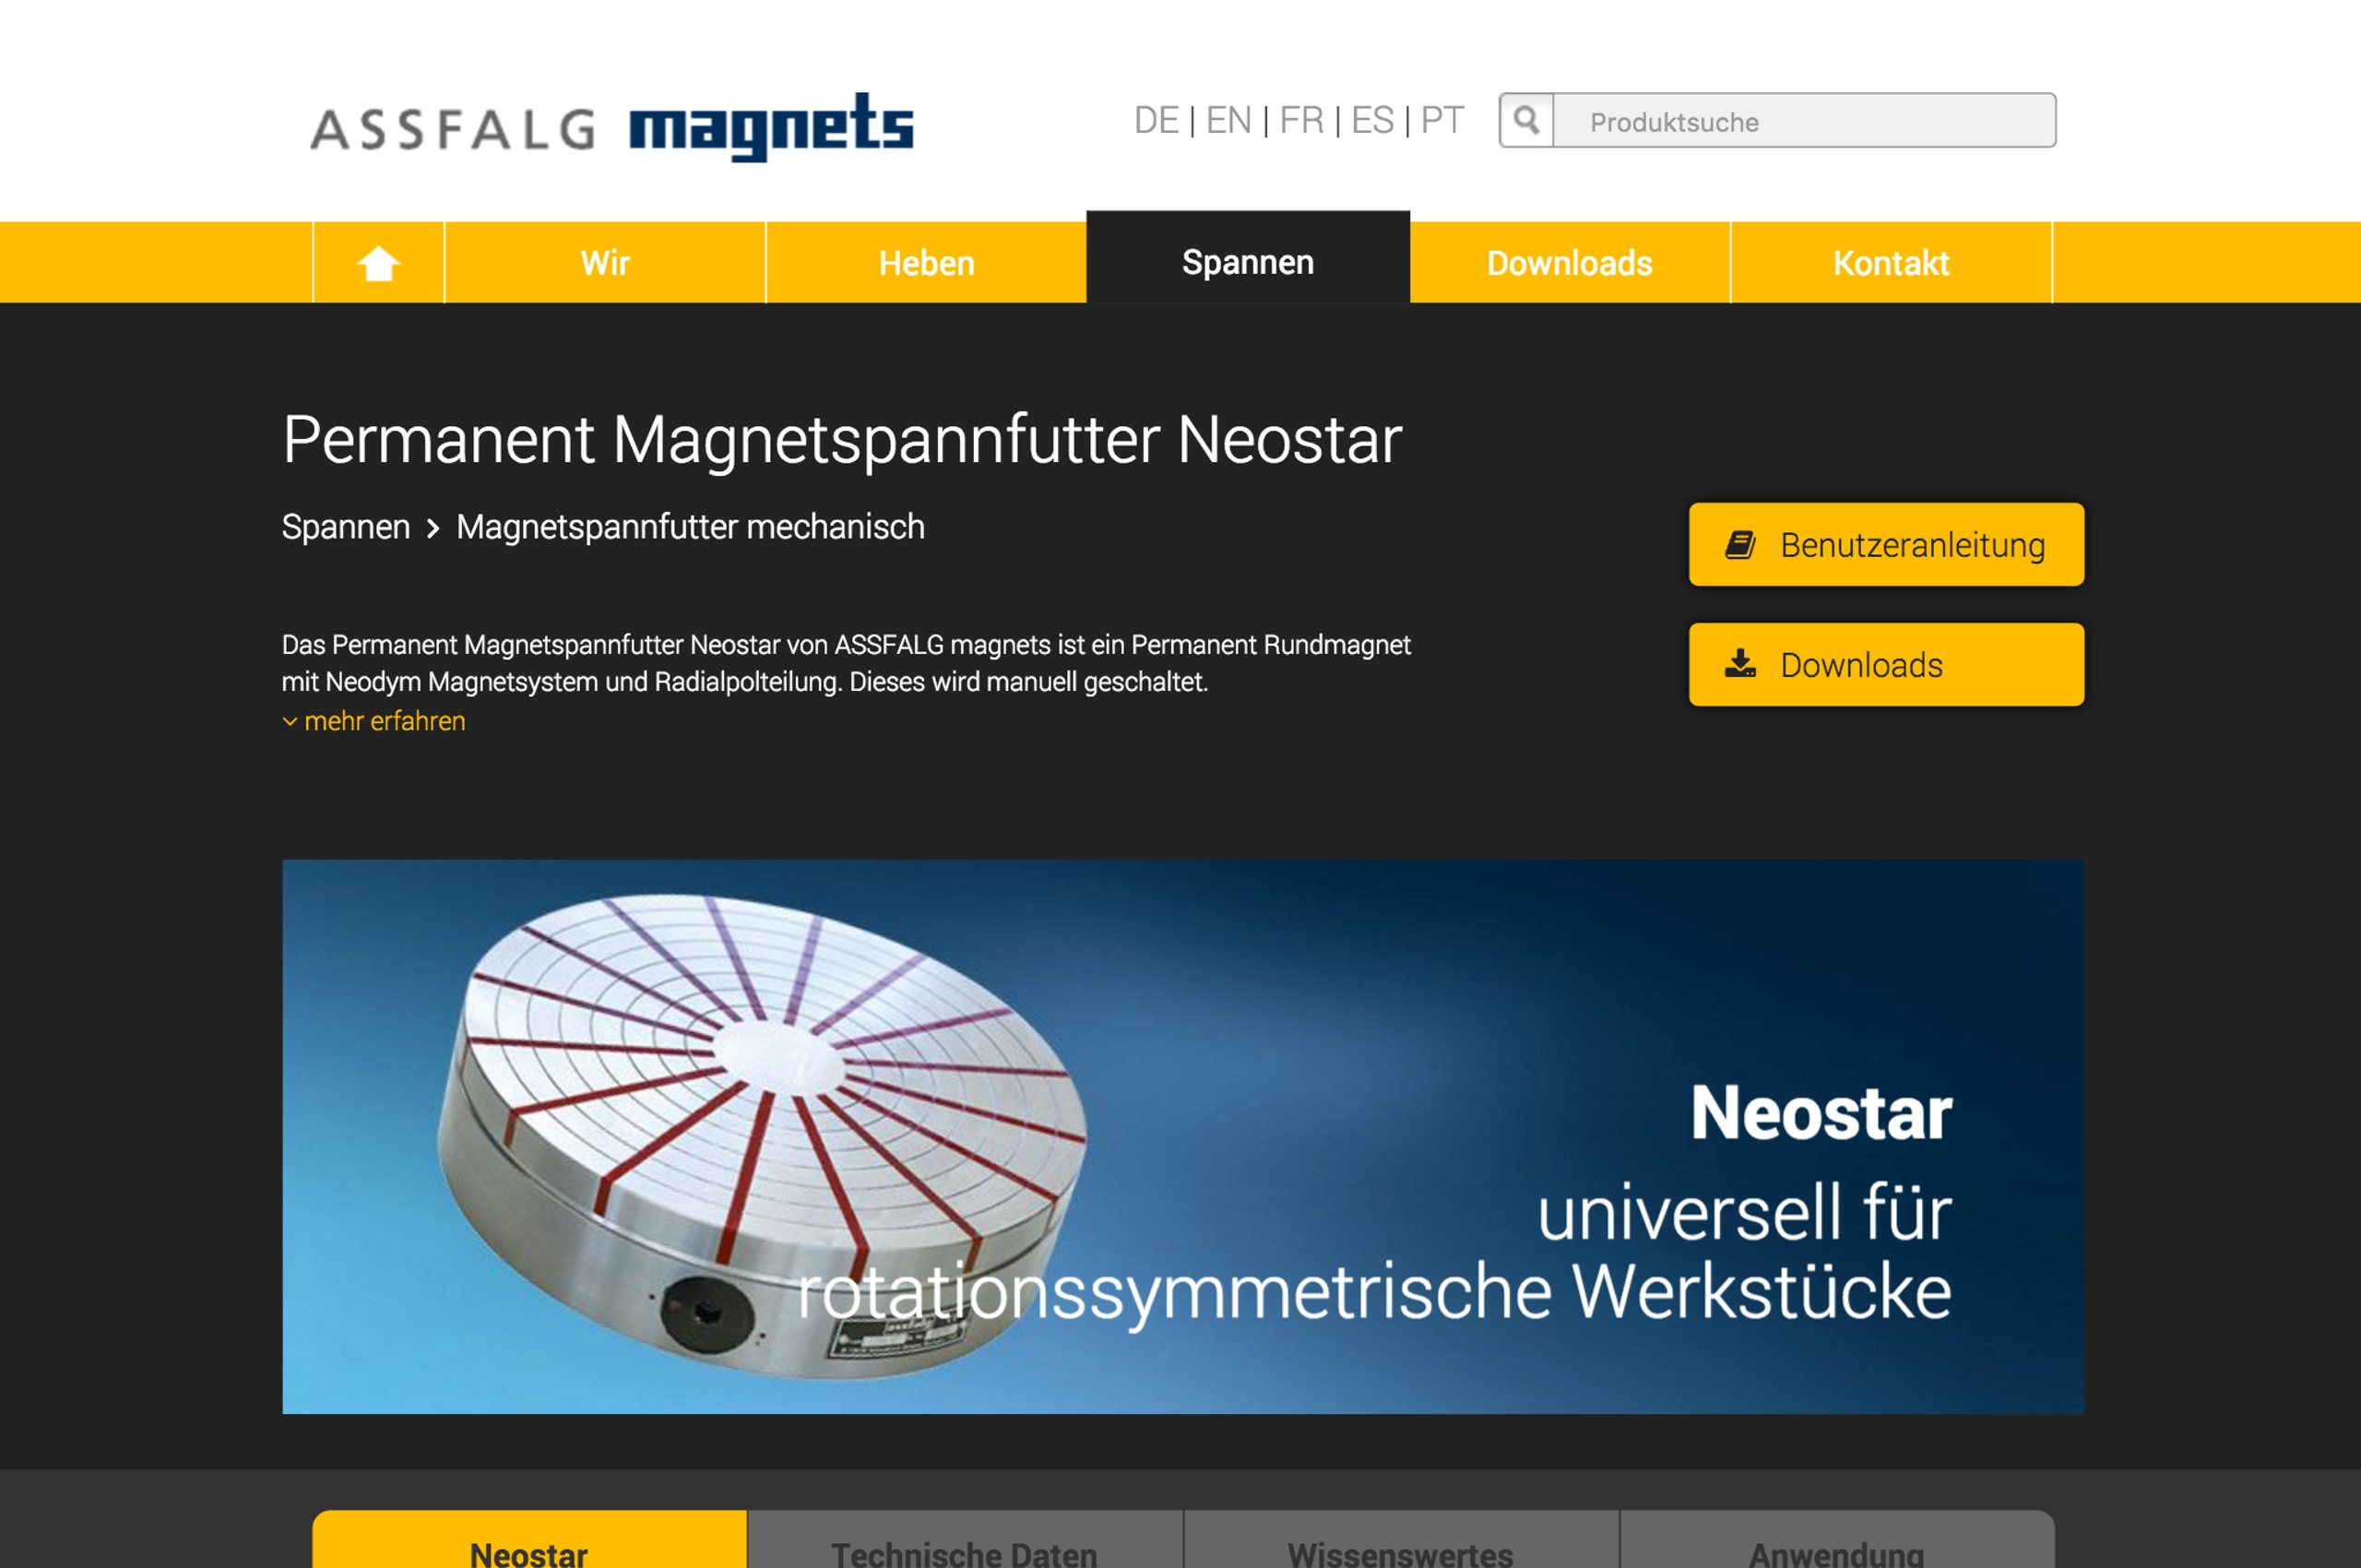 /site/assets/files/1143/assfalg-magnets-spannen.jpg